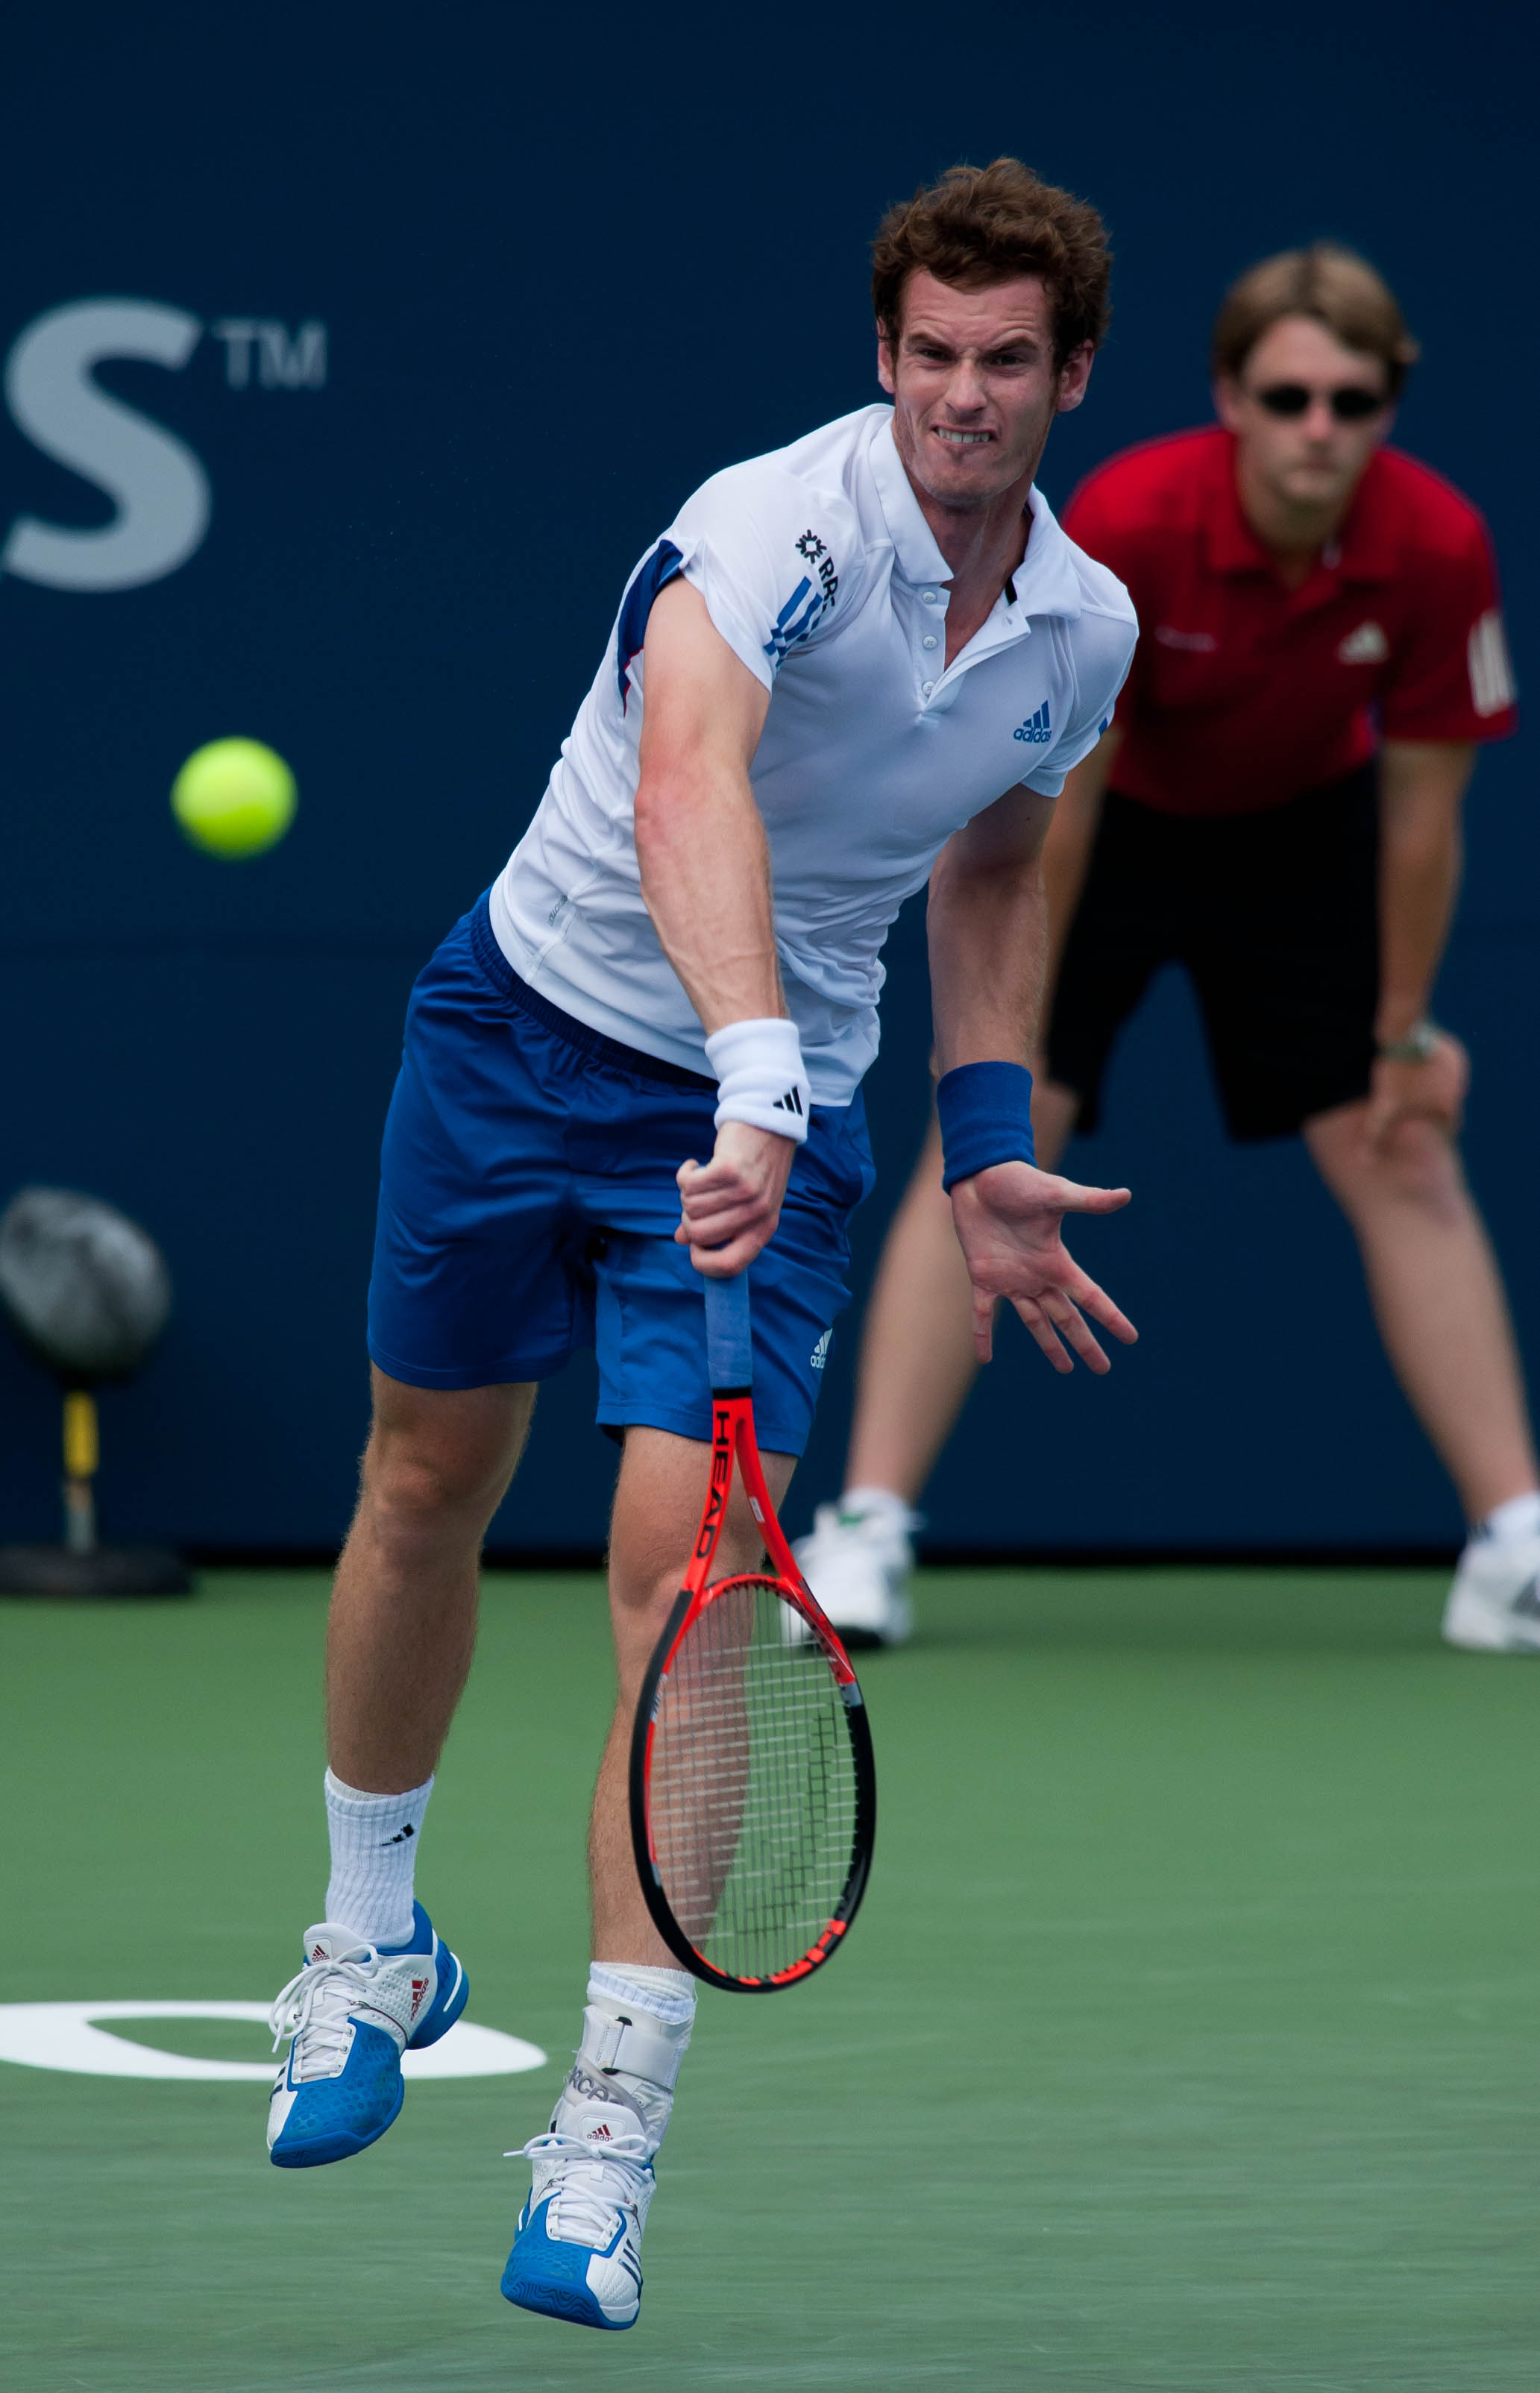 Andy_Murray_Serve_2010.jpg